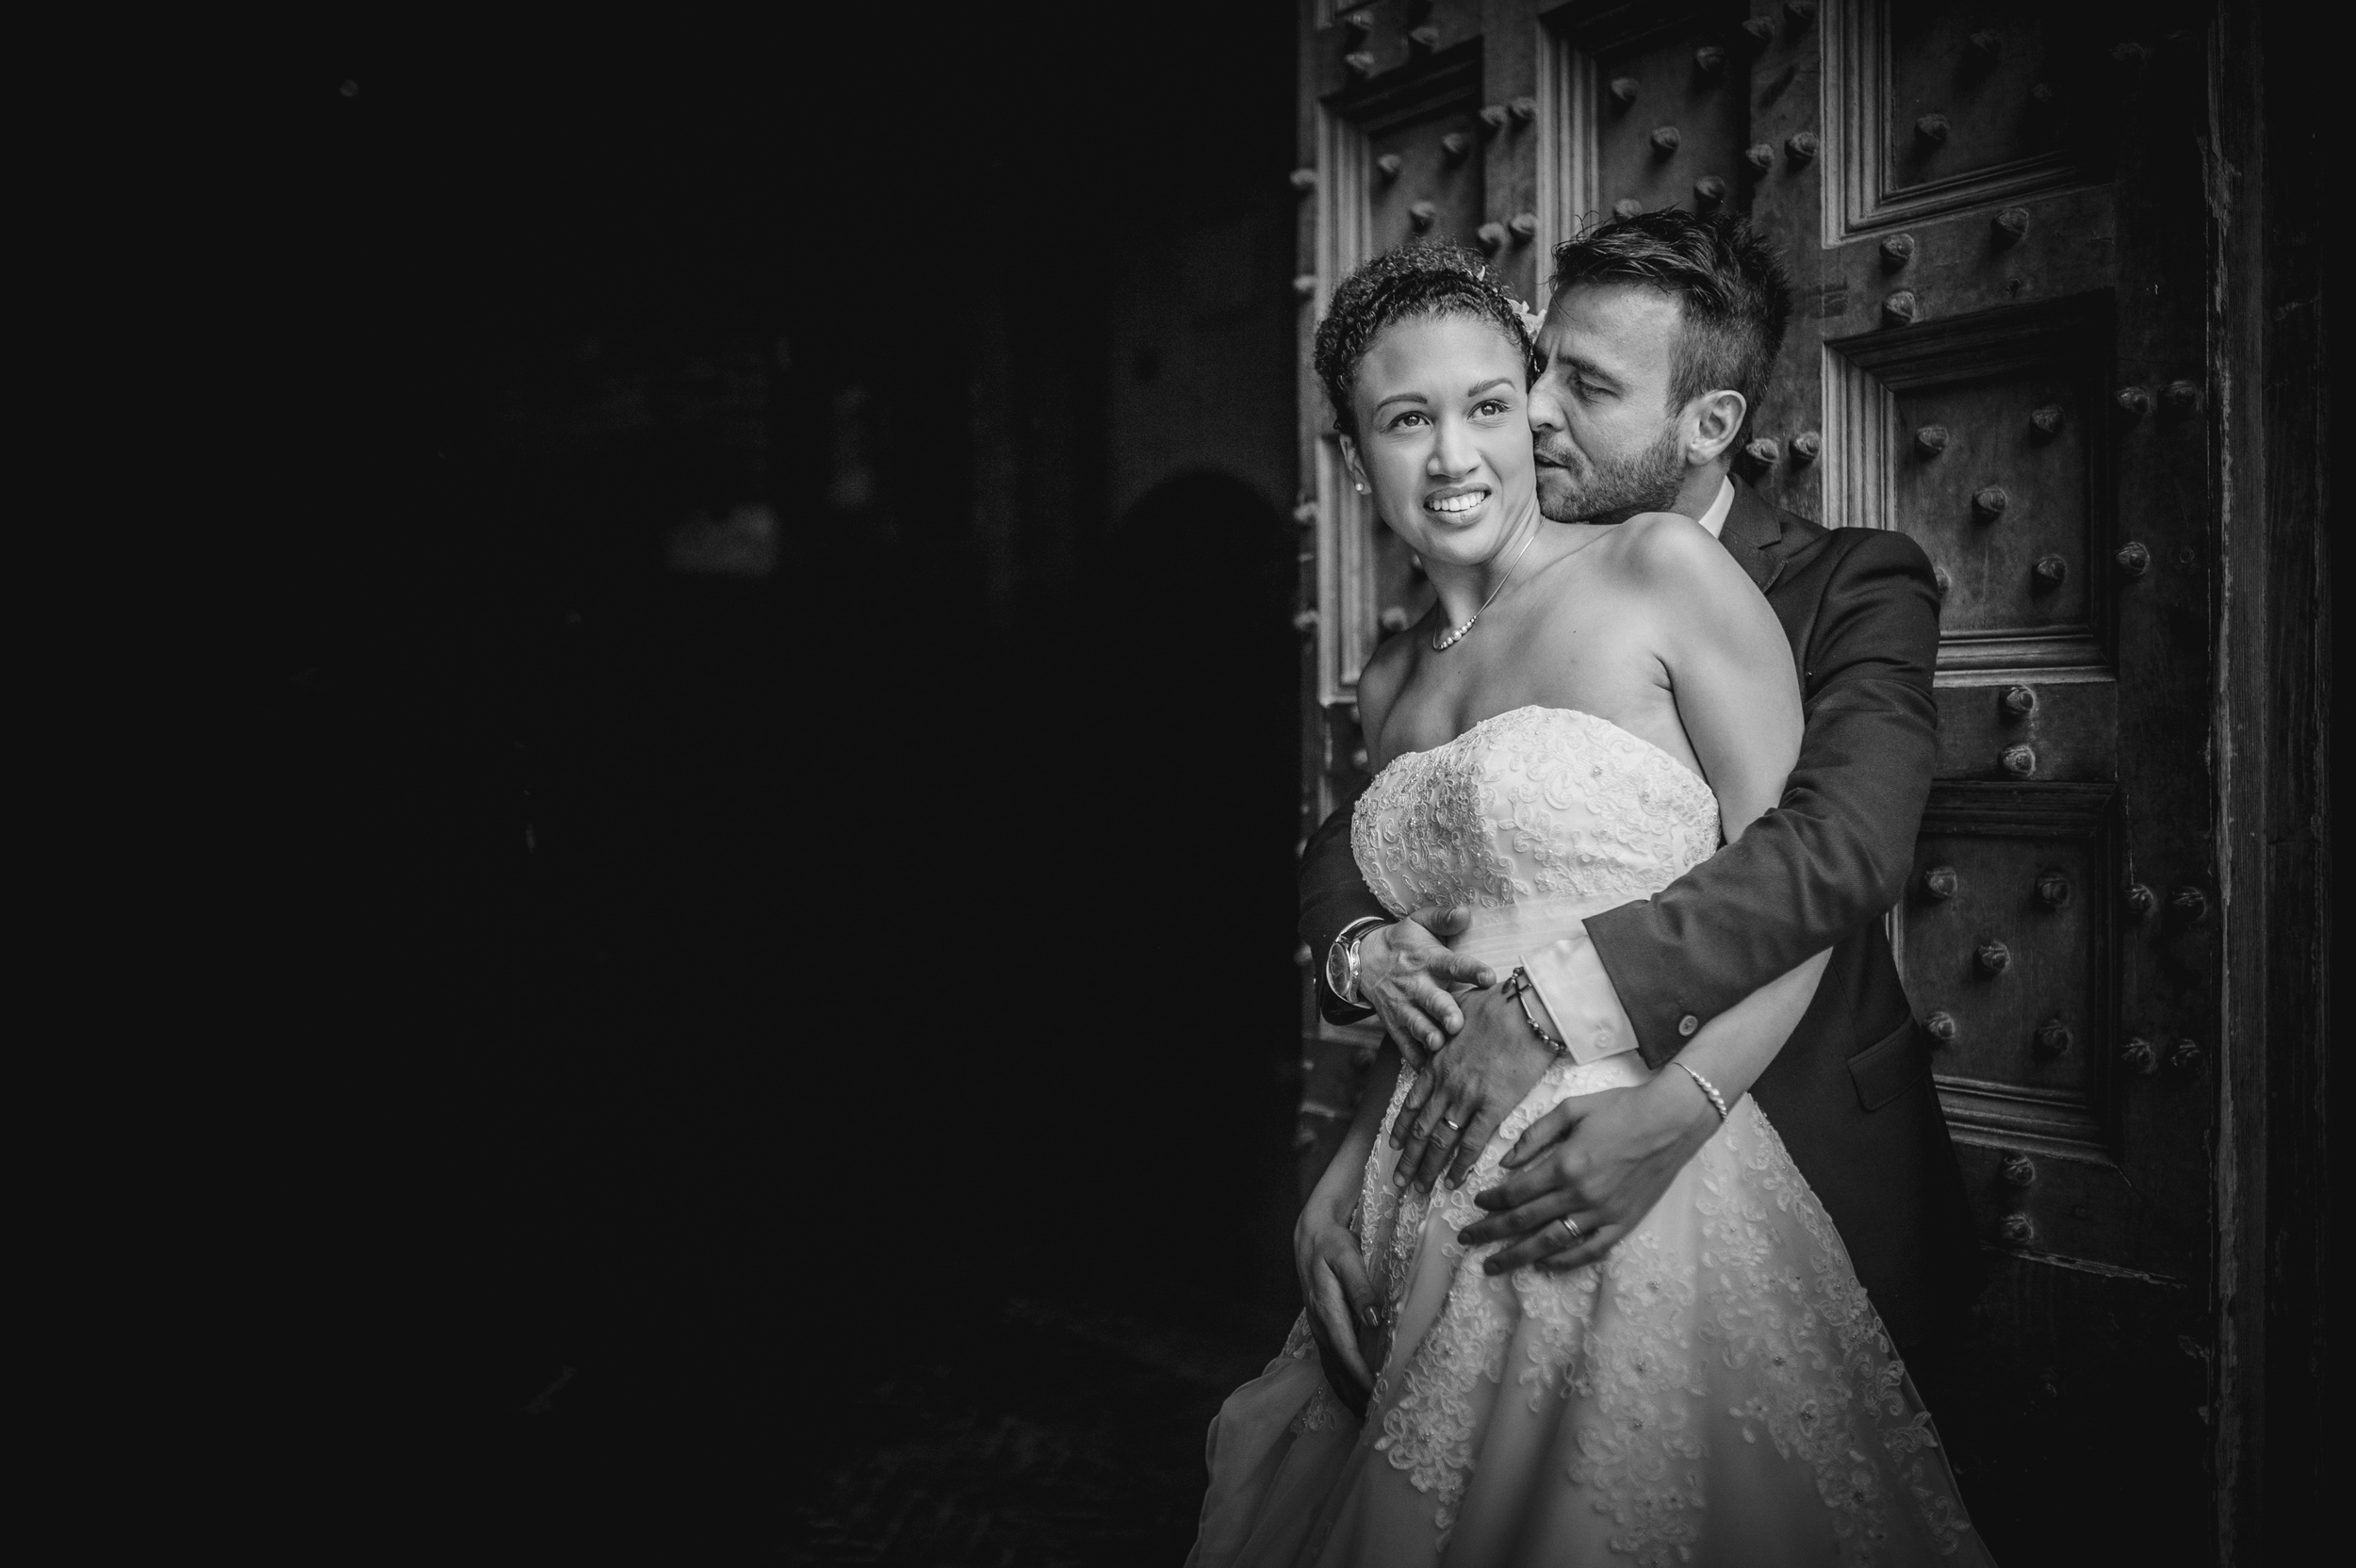 fotografo matrimonio siena toscana - wedding photographer in tuscany, siena wedding photographer